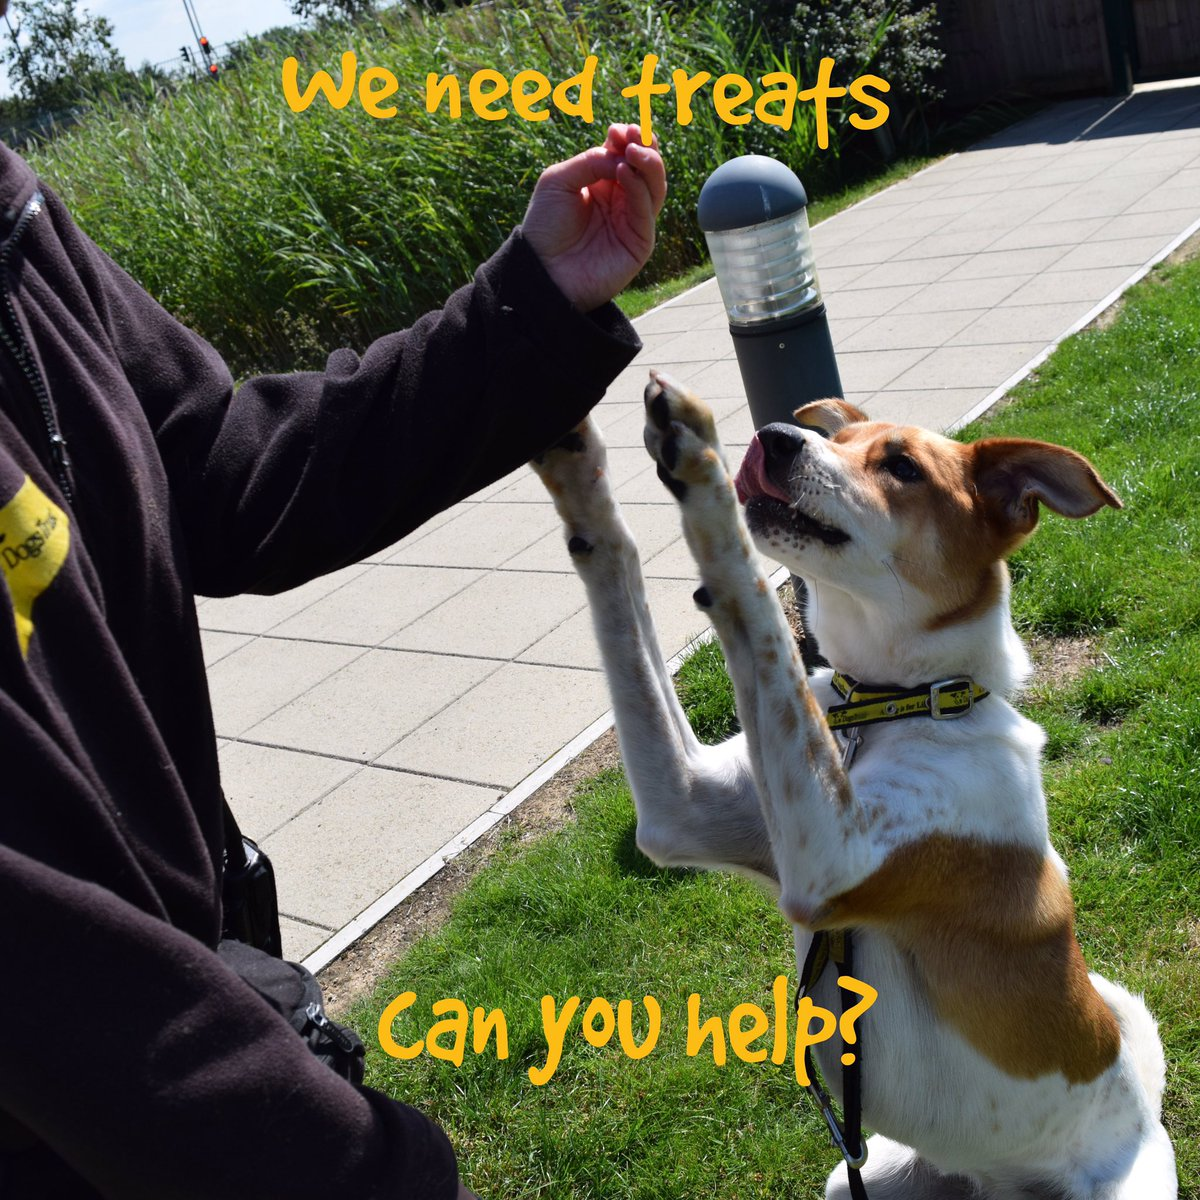 We are in desperate need of donations of treats! Can you help?   https://www. amazon.co.uk/gp/aw/ls/ref=/ 260-7011273-5080452?ie=UTF8&amp;%2AVersion%2A=1&amp;%2Aentries%2A=0&amp;lid=1ERT7NG8EZQZB&amp;ty=wishlist &nbsp; …  @dogstrust #PlzRT #donate #charity #giving <br>http://pic.twitter.com/nfy53mKDjo